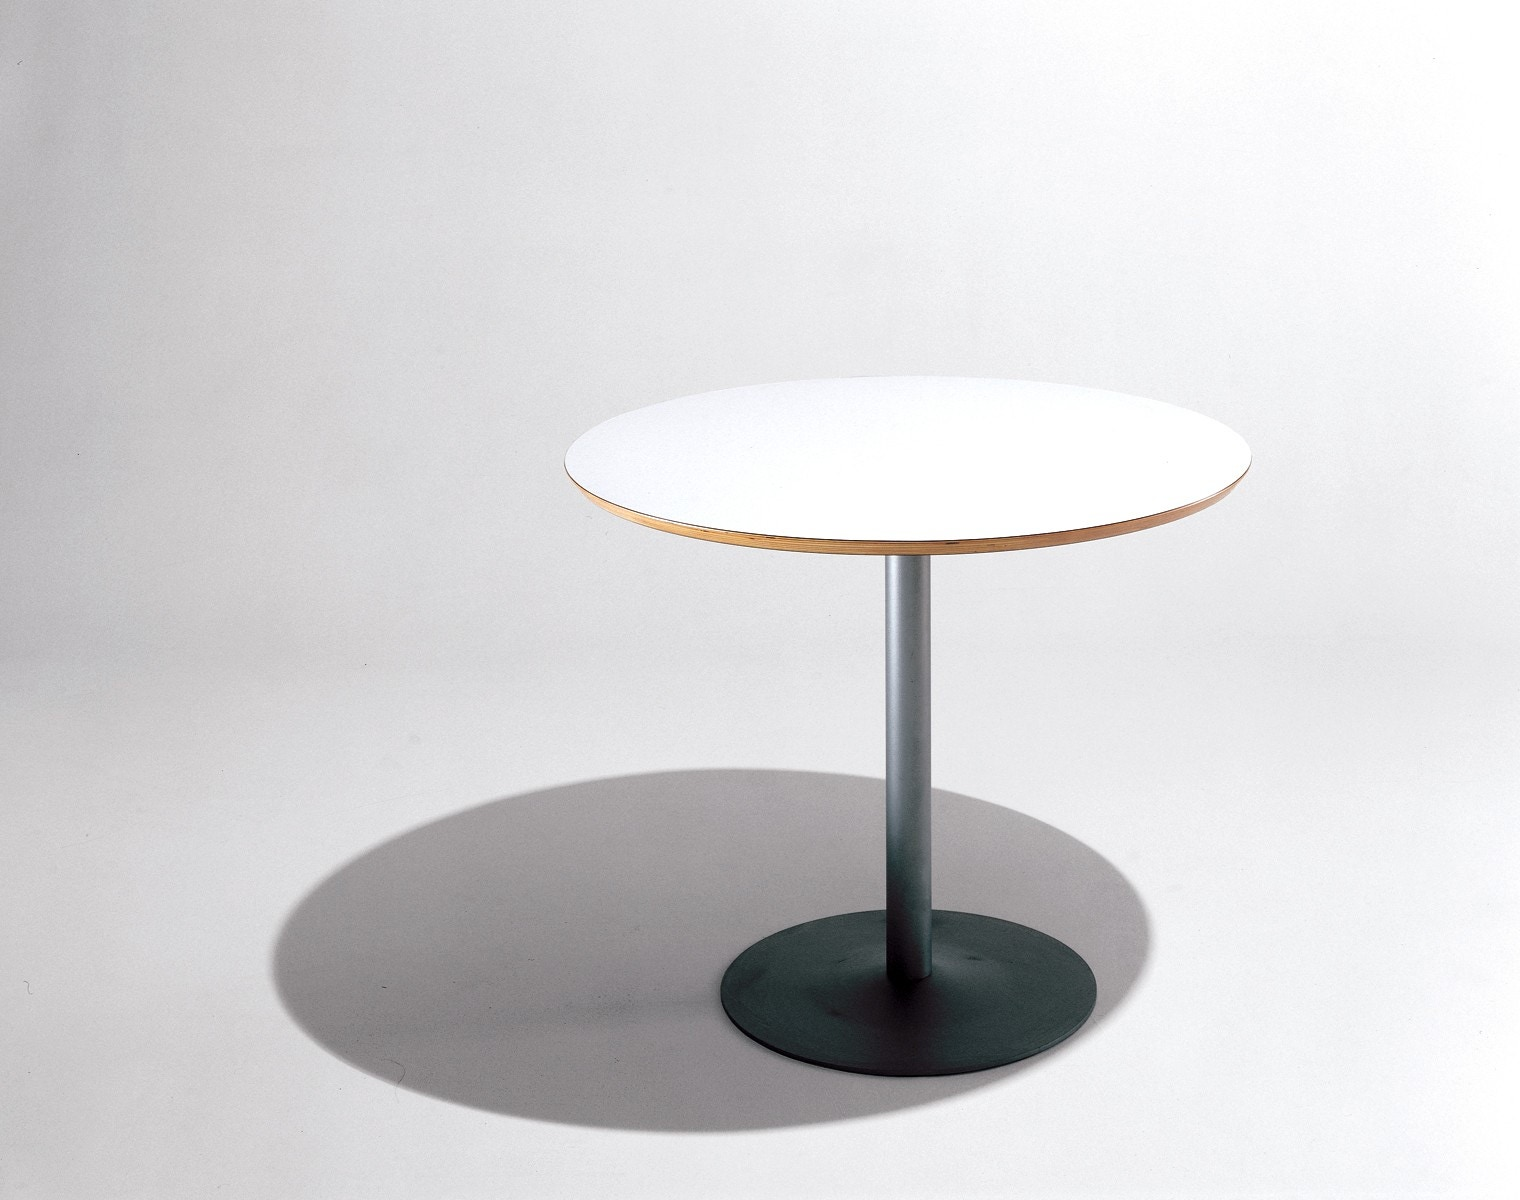 ... Round Cafe Table. 1